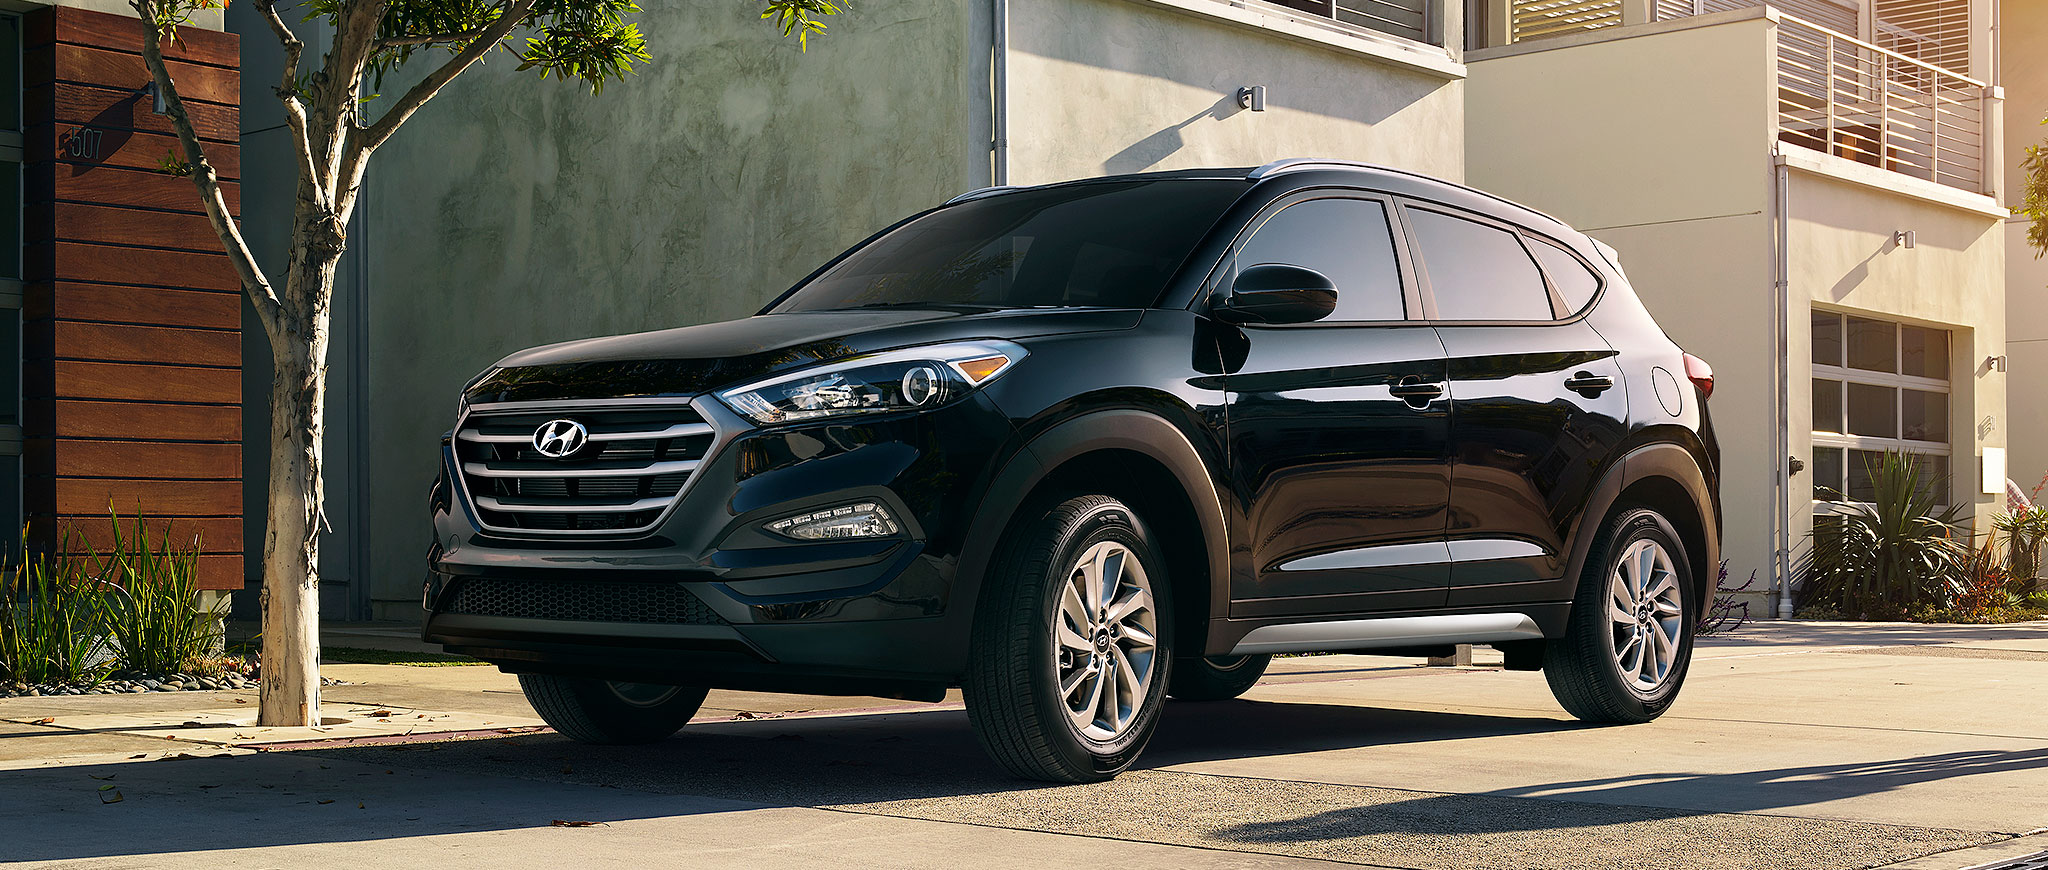 Midlothian Hyundai Tucson SUV For Sale